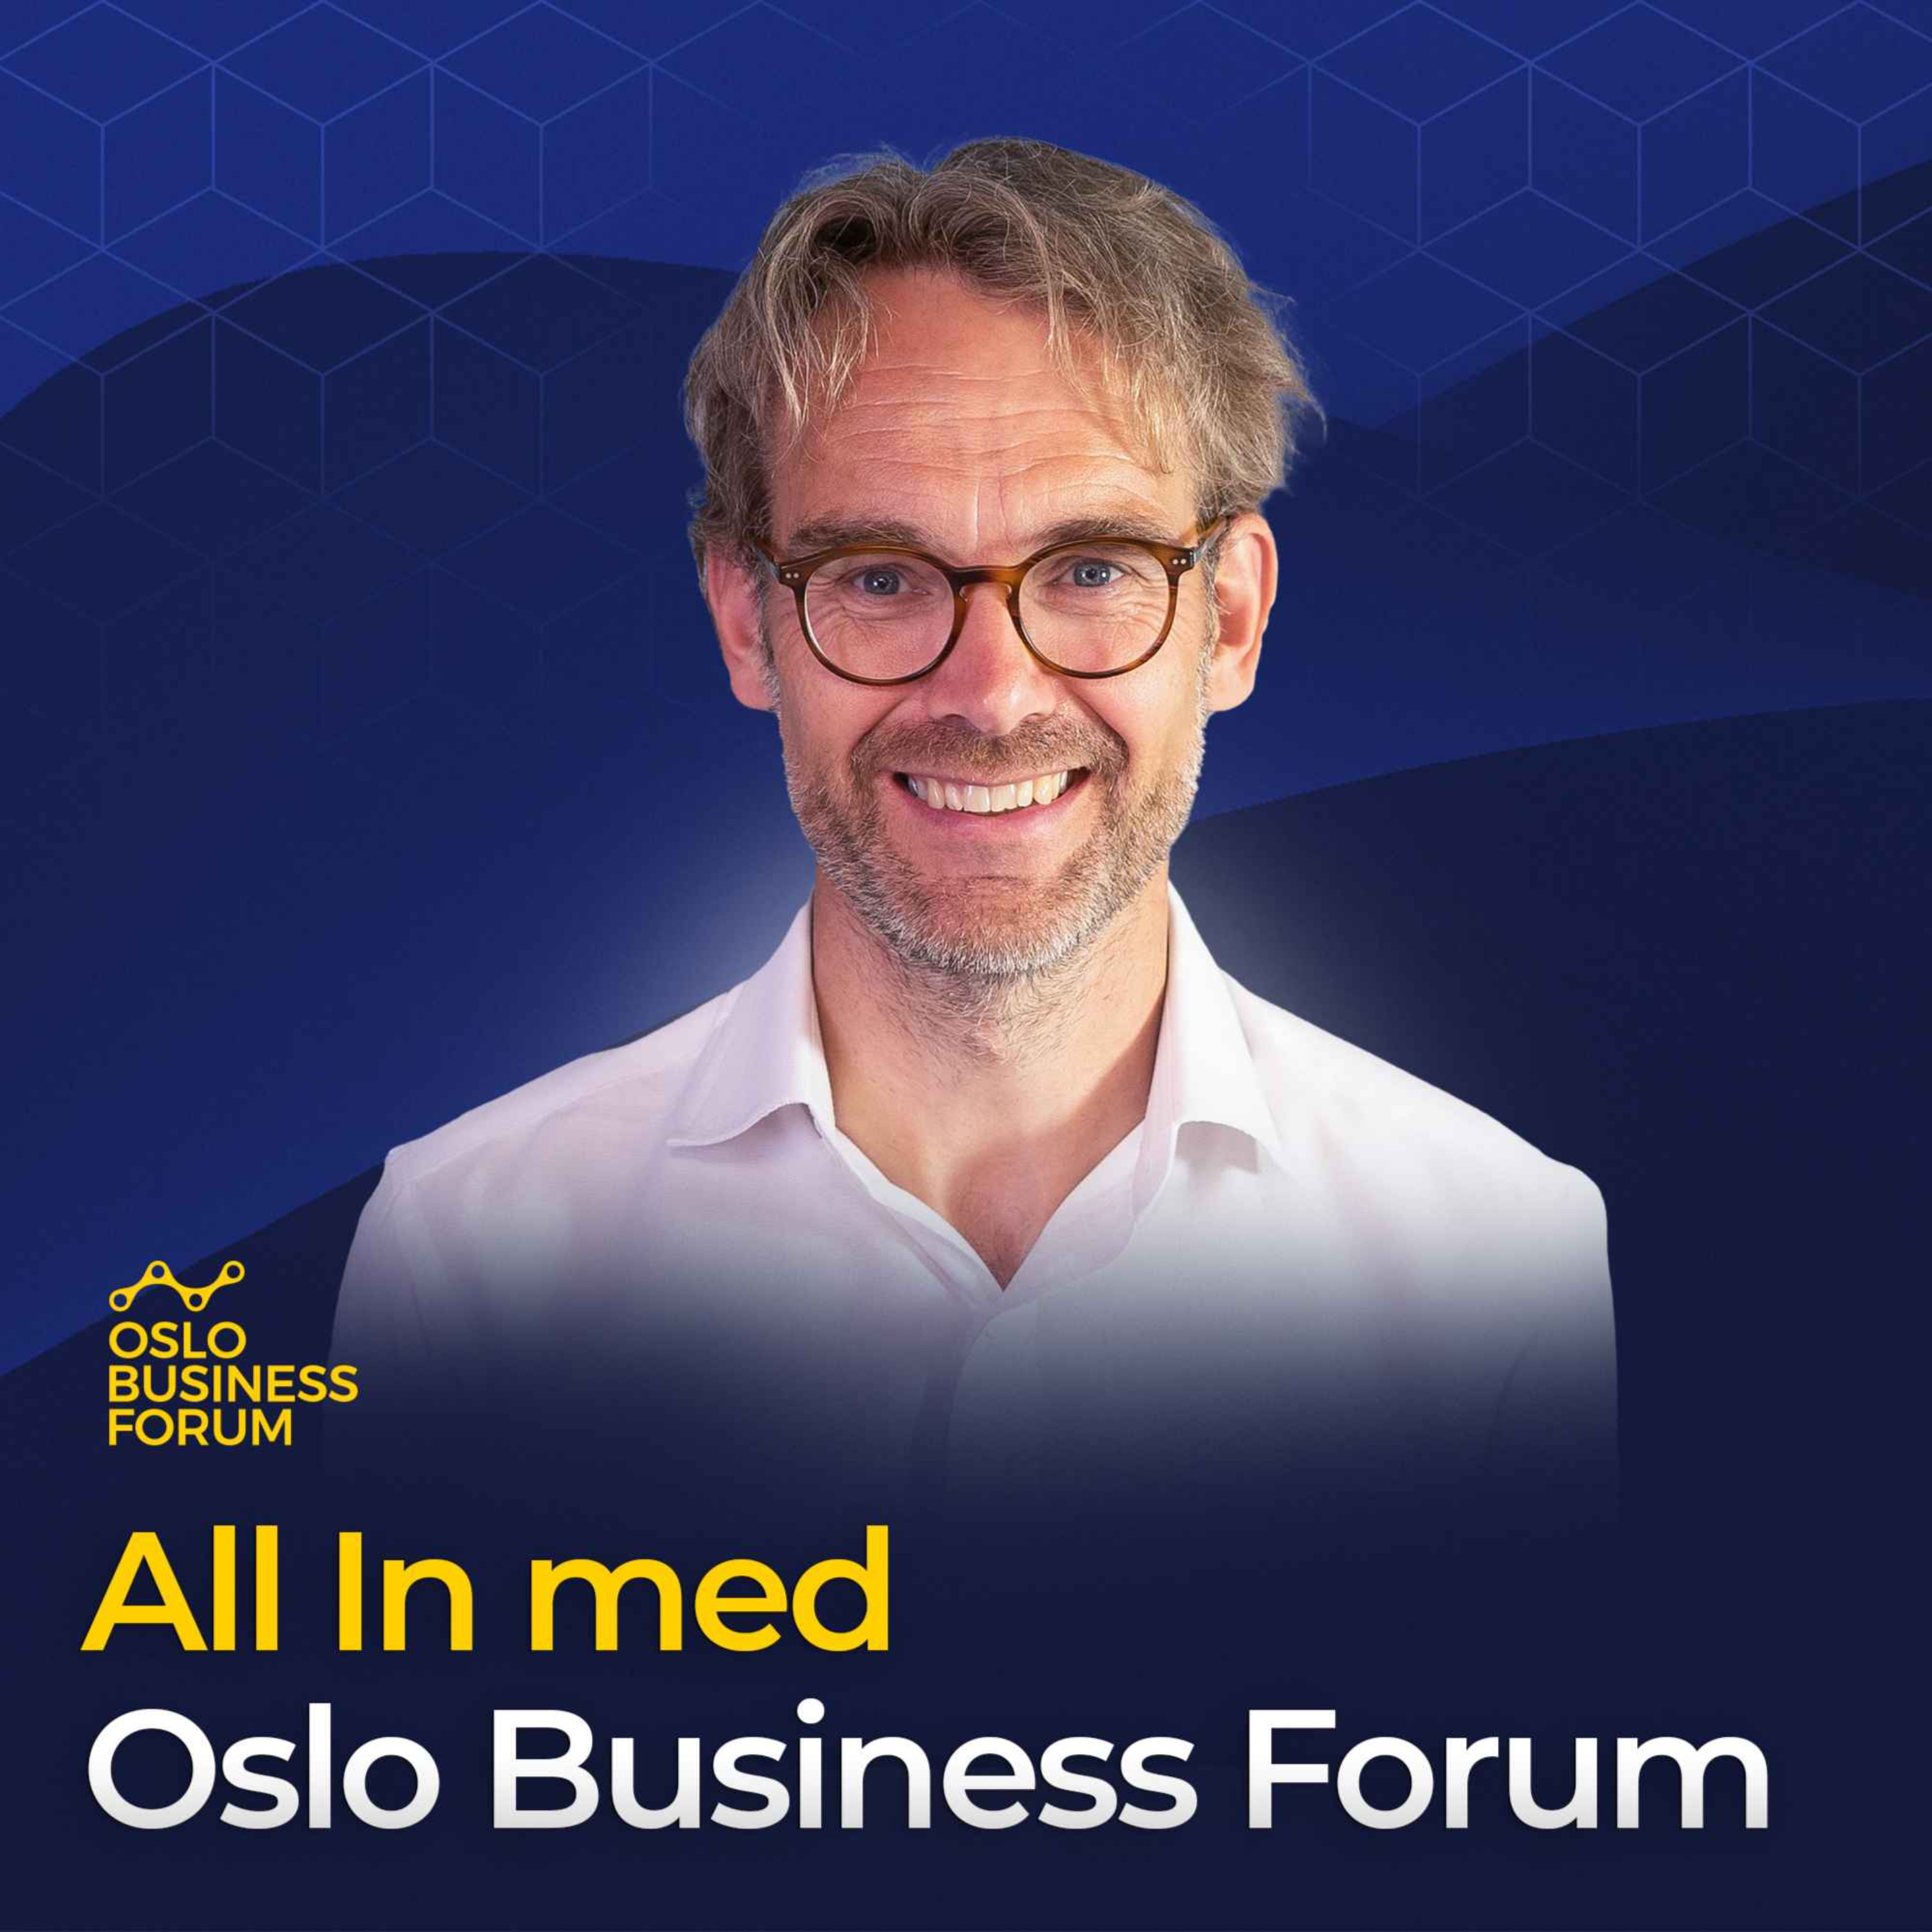 All In med Oslo Business Forum